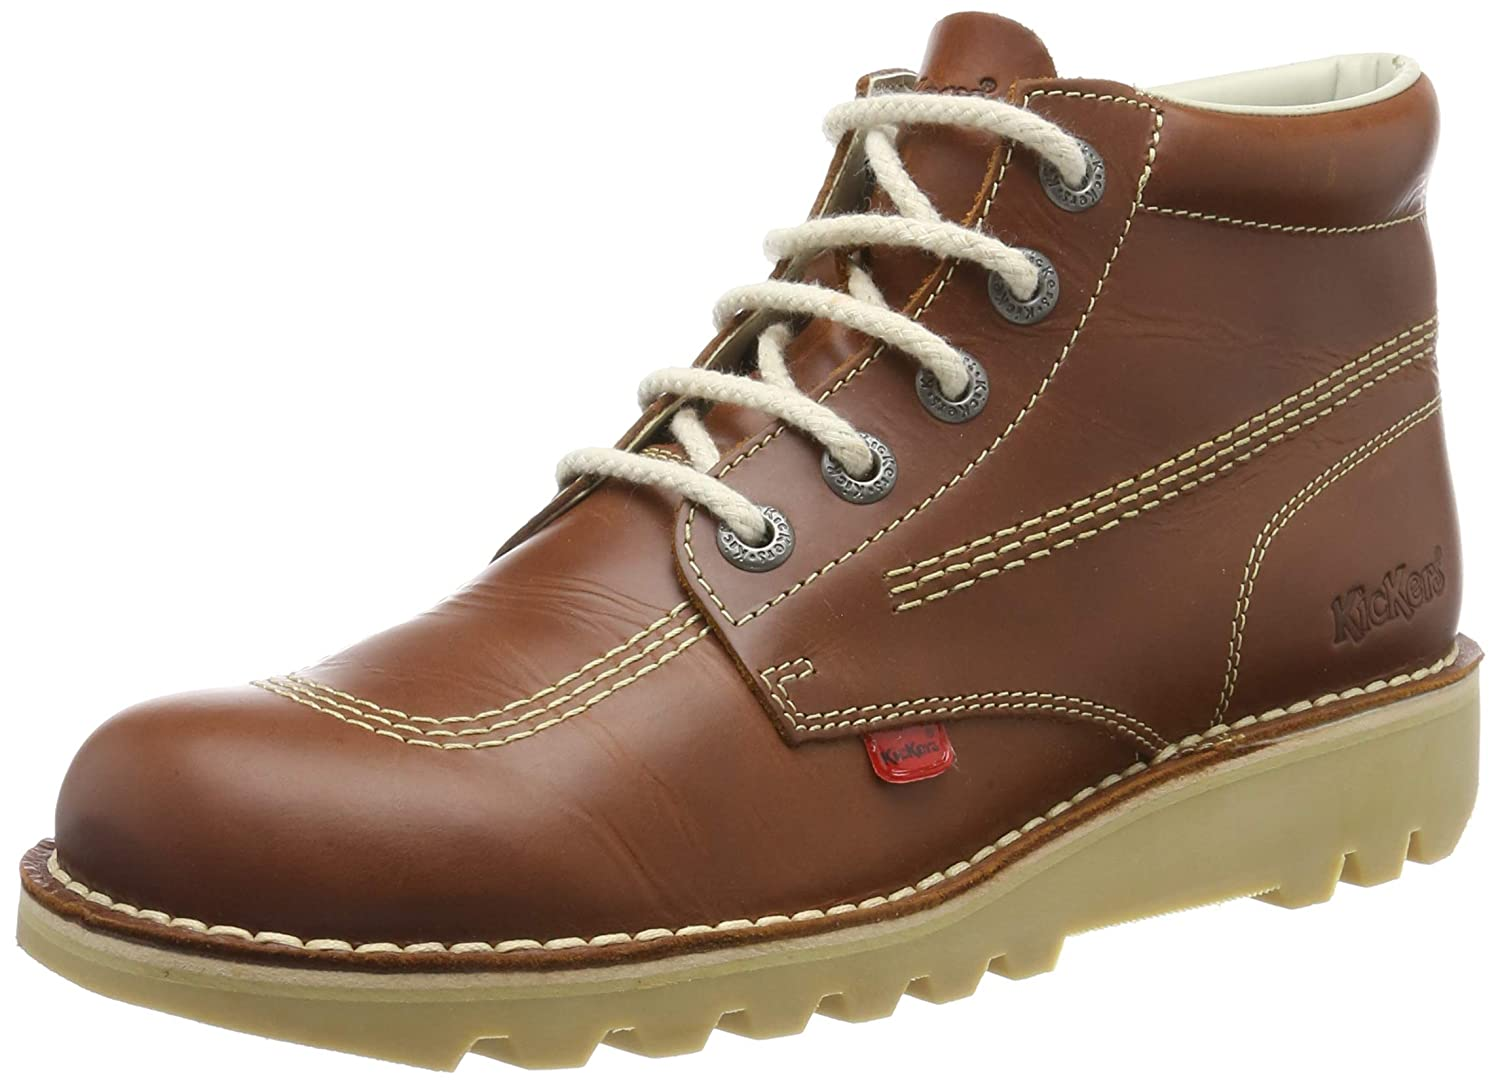 Brown (Dk Tan) Kickers Men's Kick Hi Ankle Boots